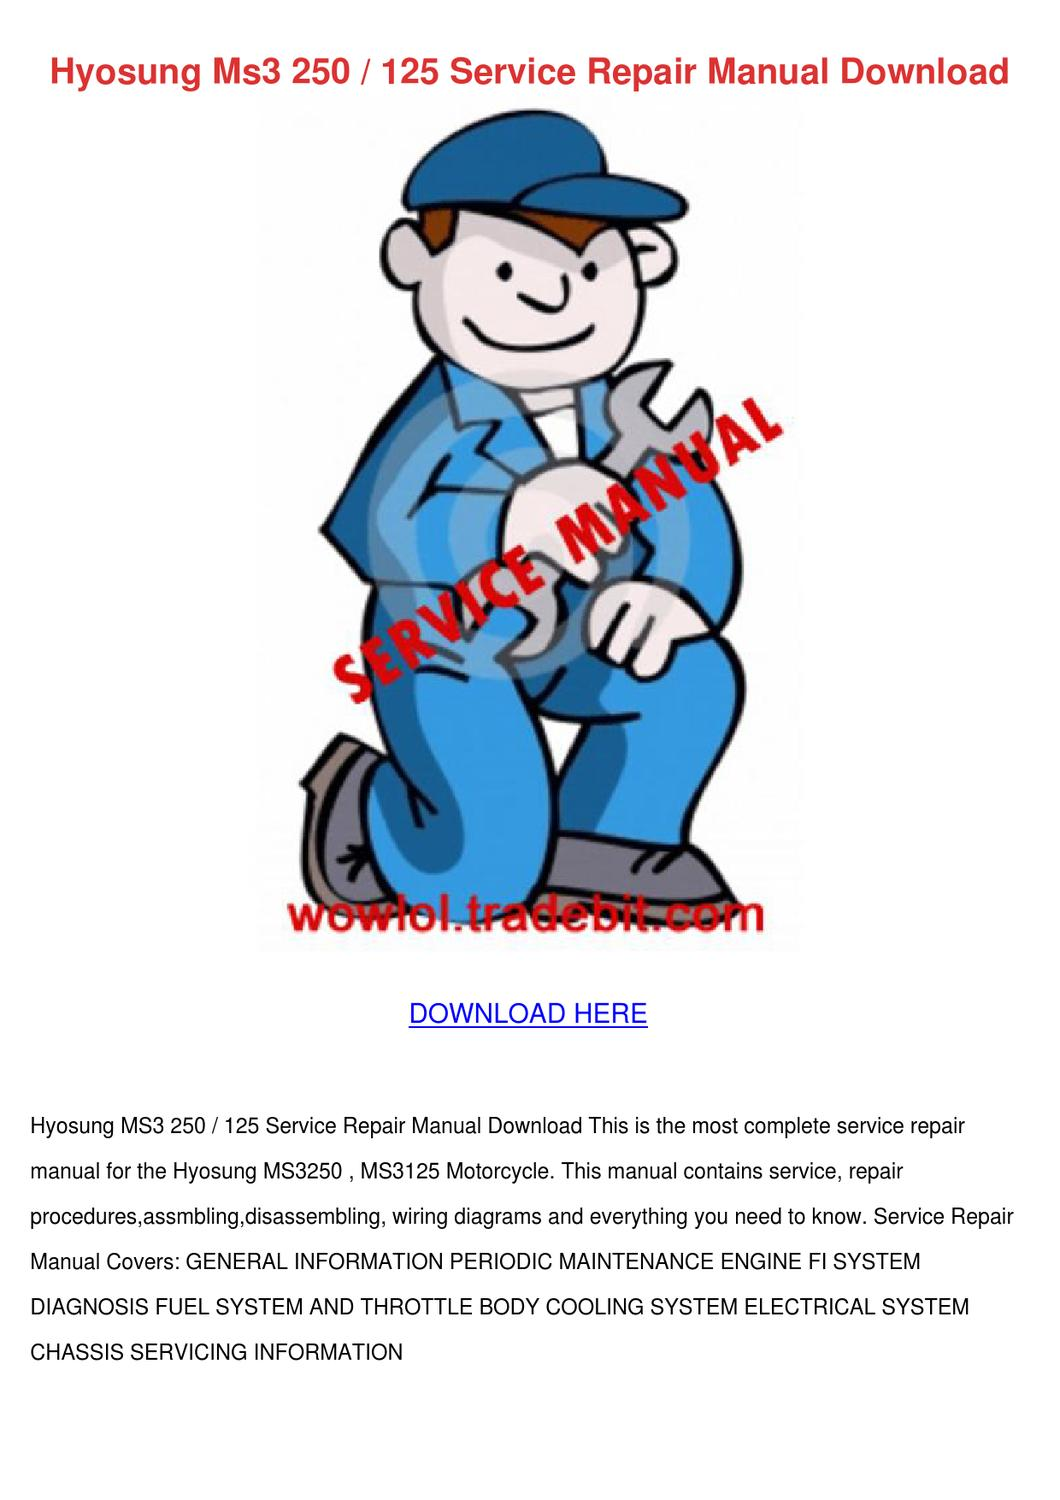 Hyosung Ms3 250 125 Service Repair Manual Dow By Candybentley Issuu Wiring Diagram